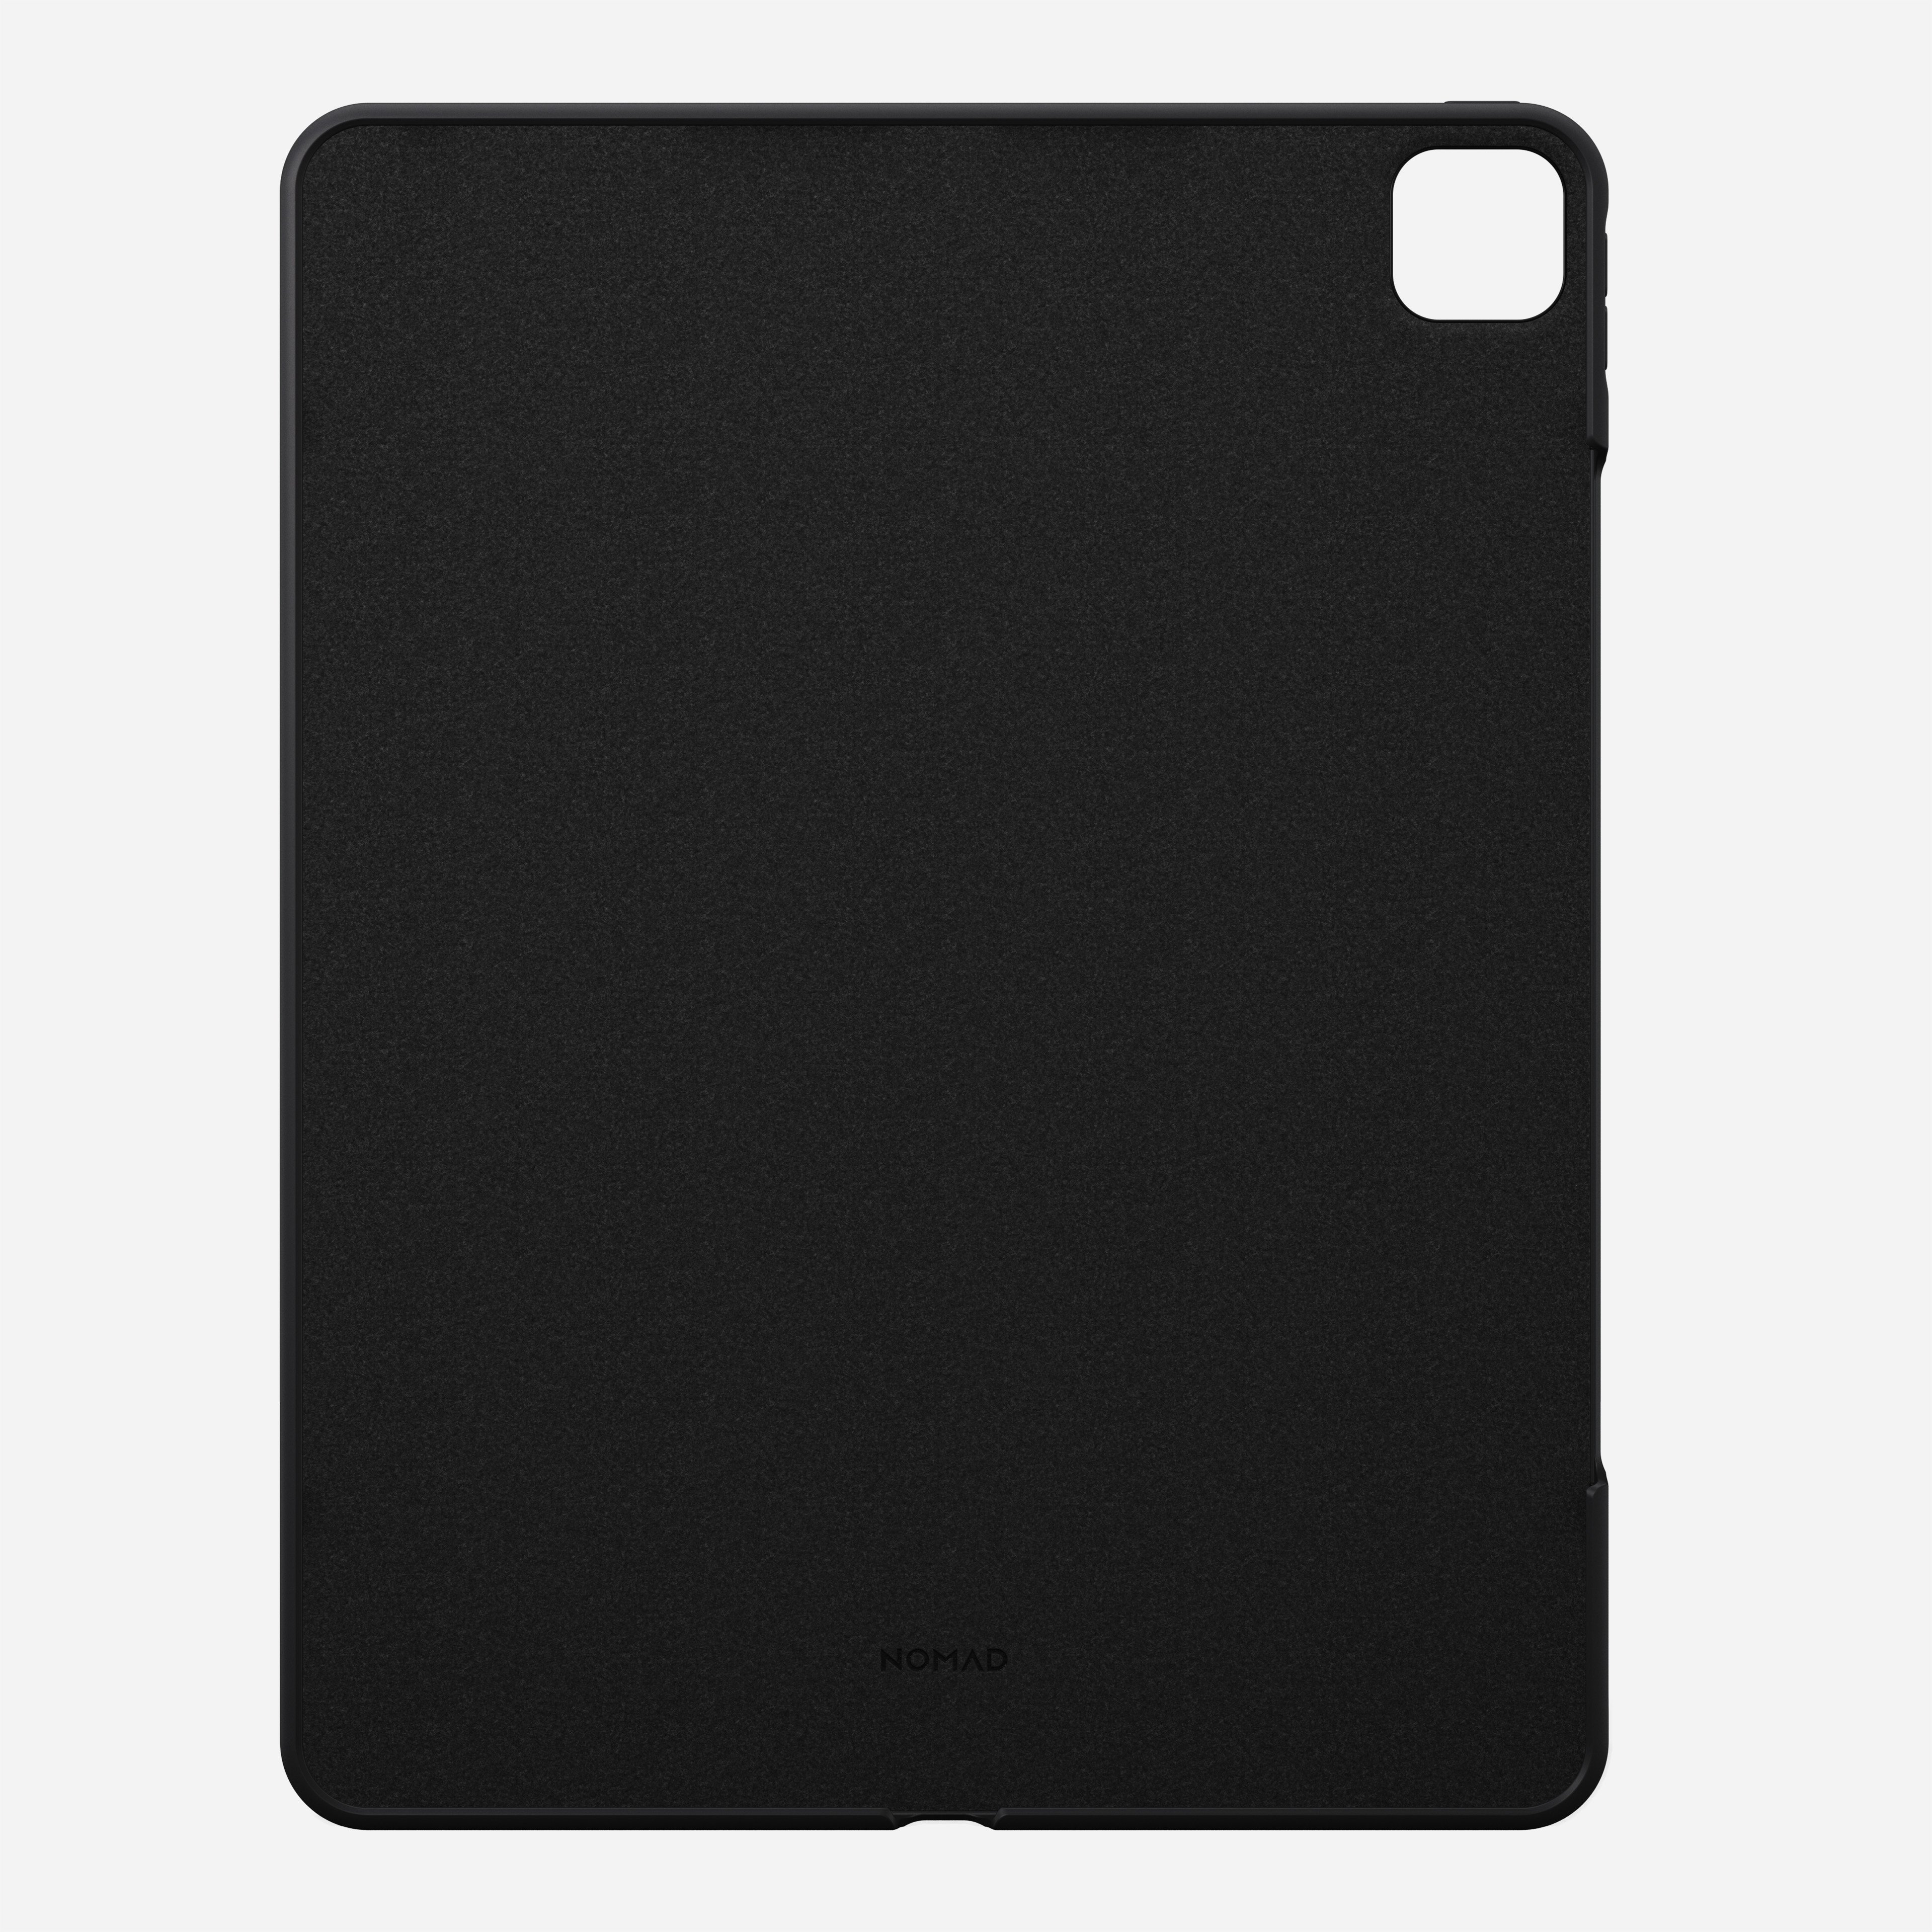 Rugged case horween leather black ipad pro 12 9 inch 4th generation